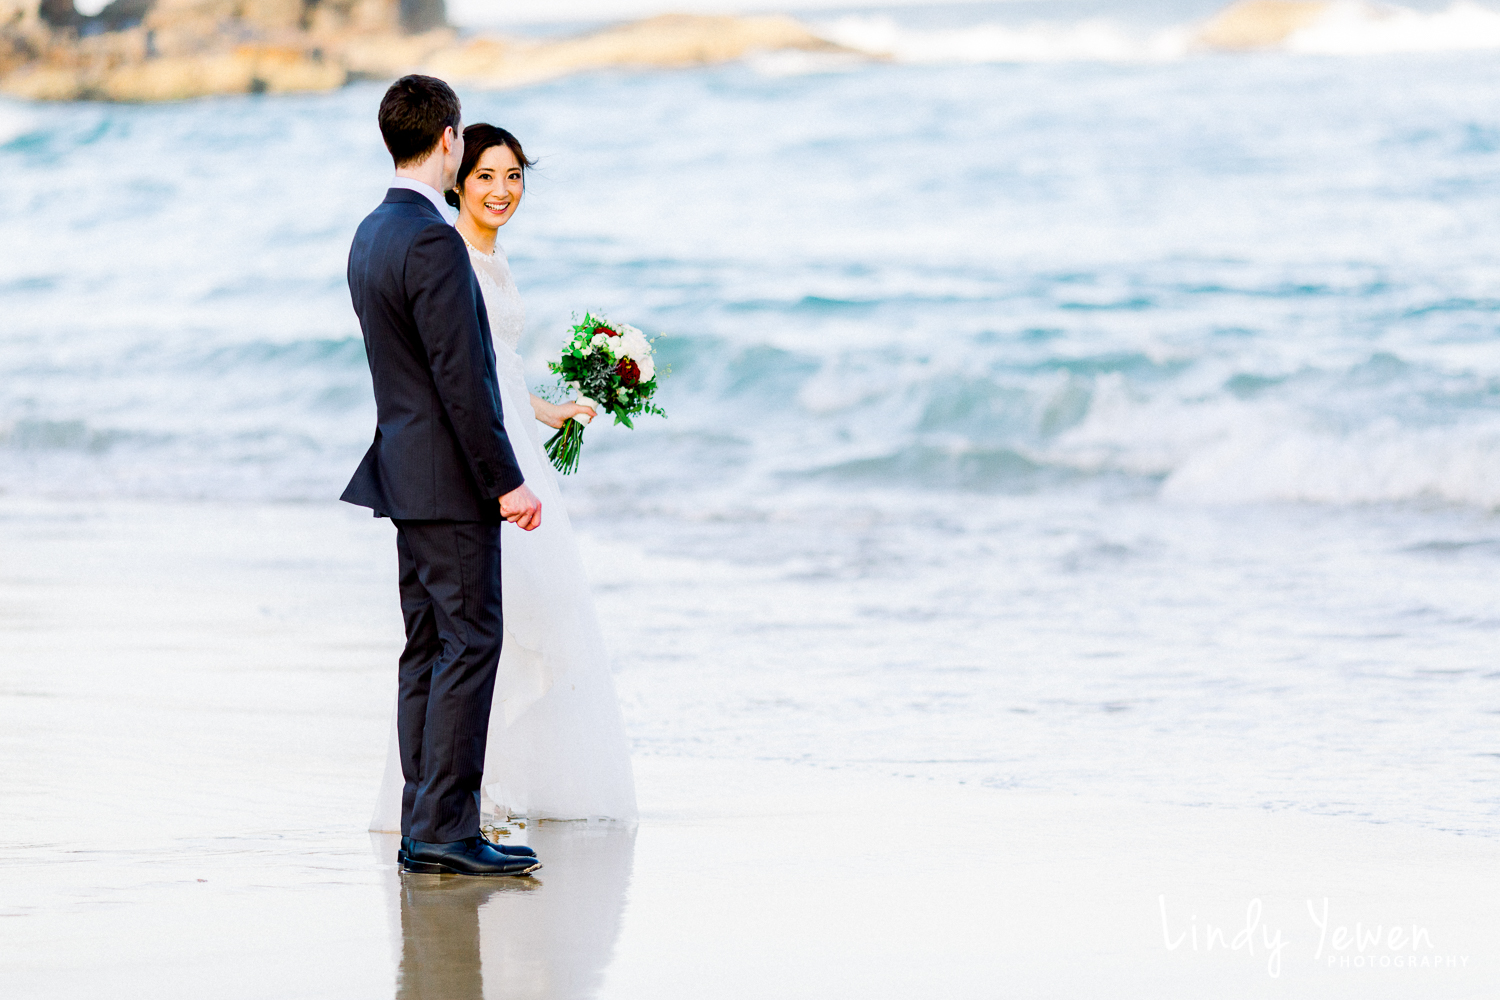 Sunshine-Beach-Weddings-Dimitrije-Maria 206.jpg